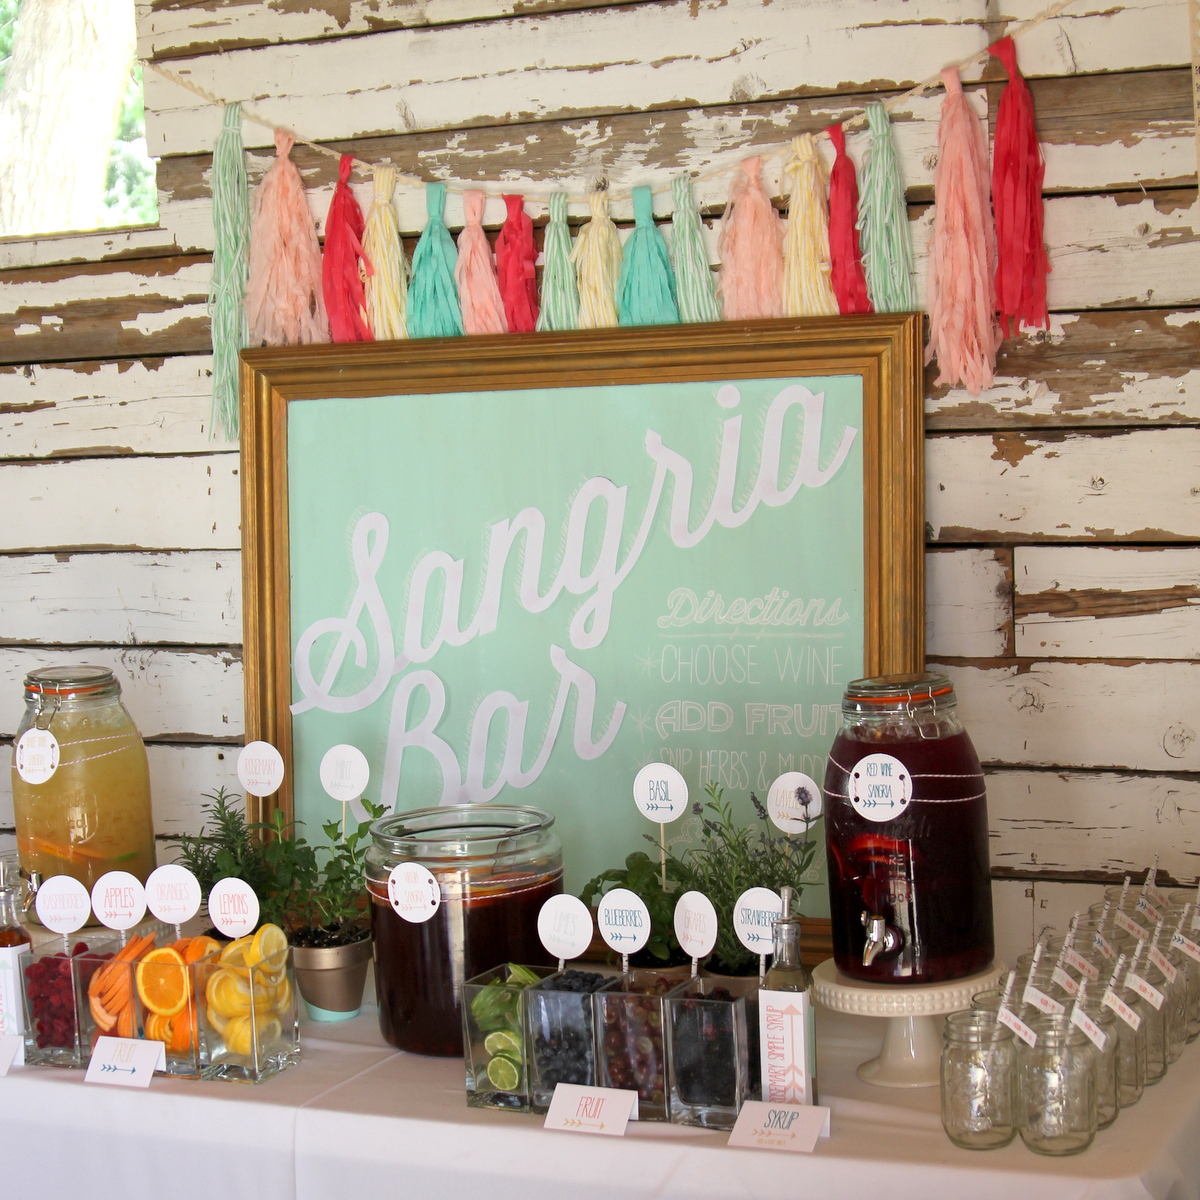 Wedding Drinks Ideas: The Ultimate Sangria Bar- Summer's Best Drink Station